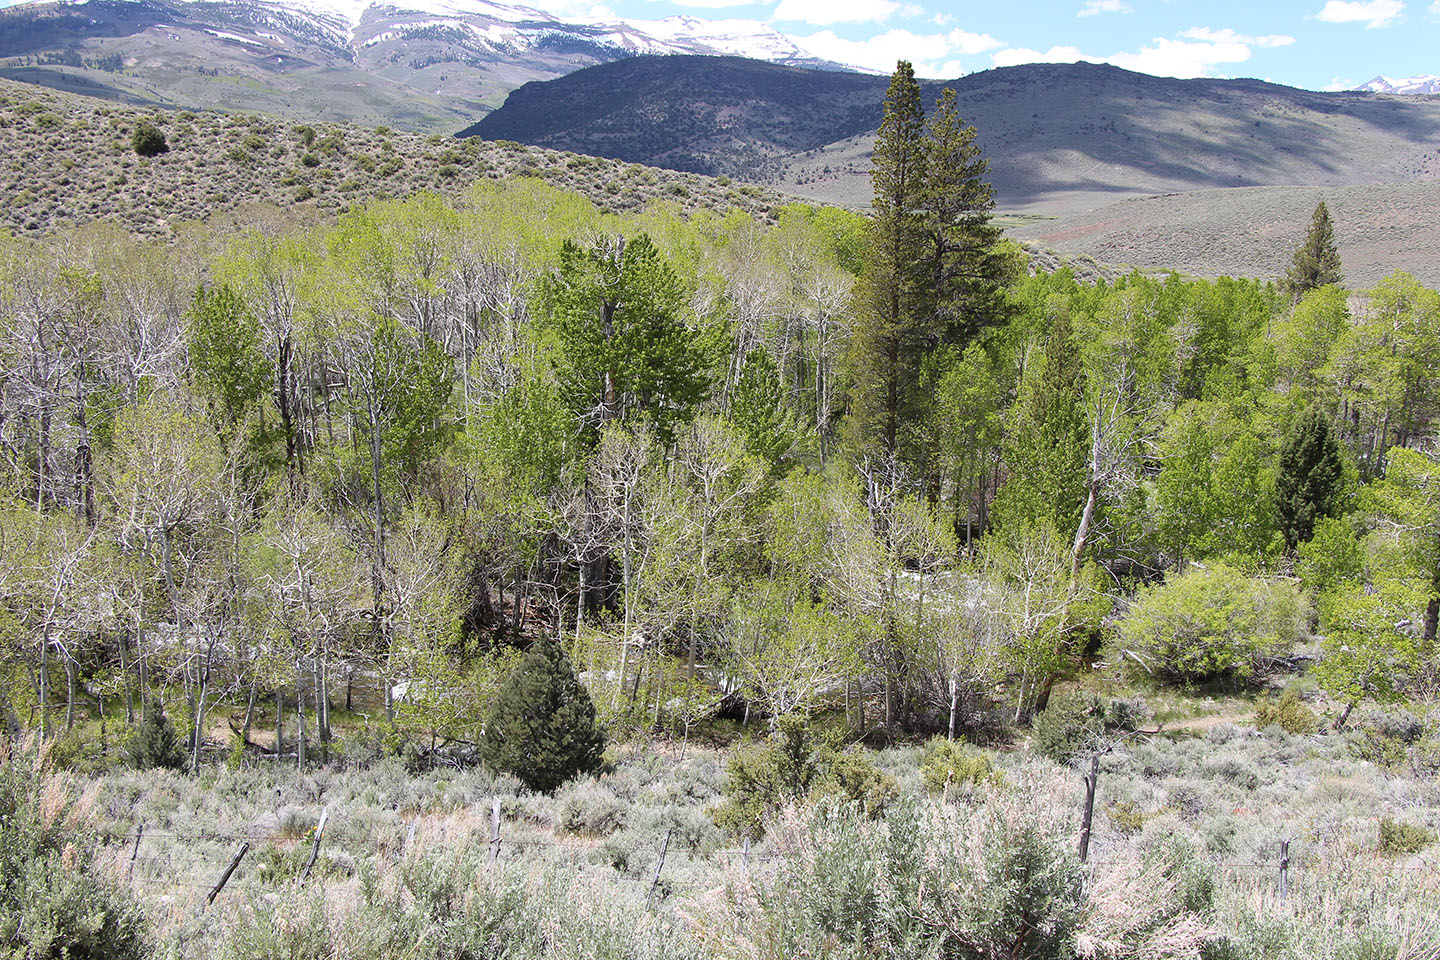 Conifer encroachment of the bigger pines, like Jeffrey pines and Lodgepole pines, is one of the biggest threats to aspen stands